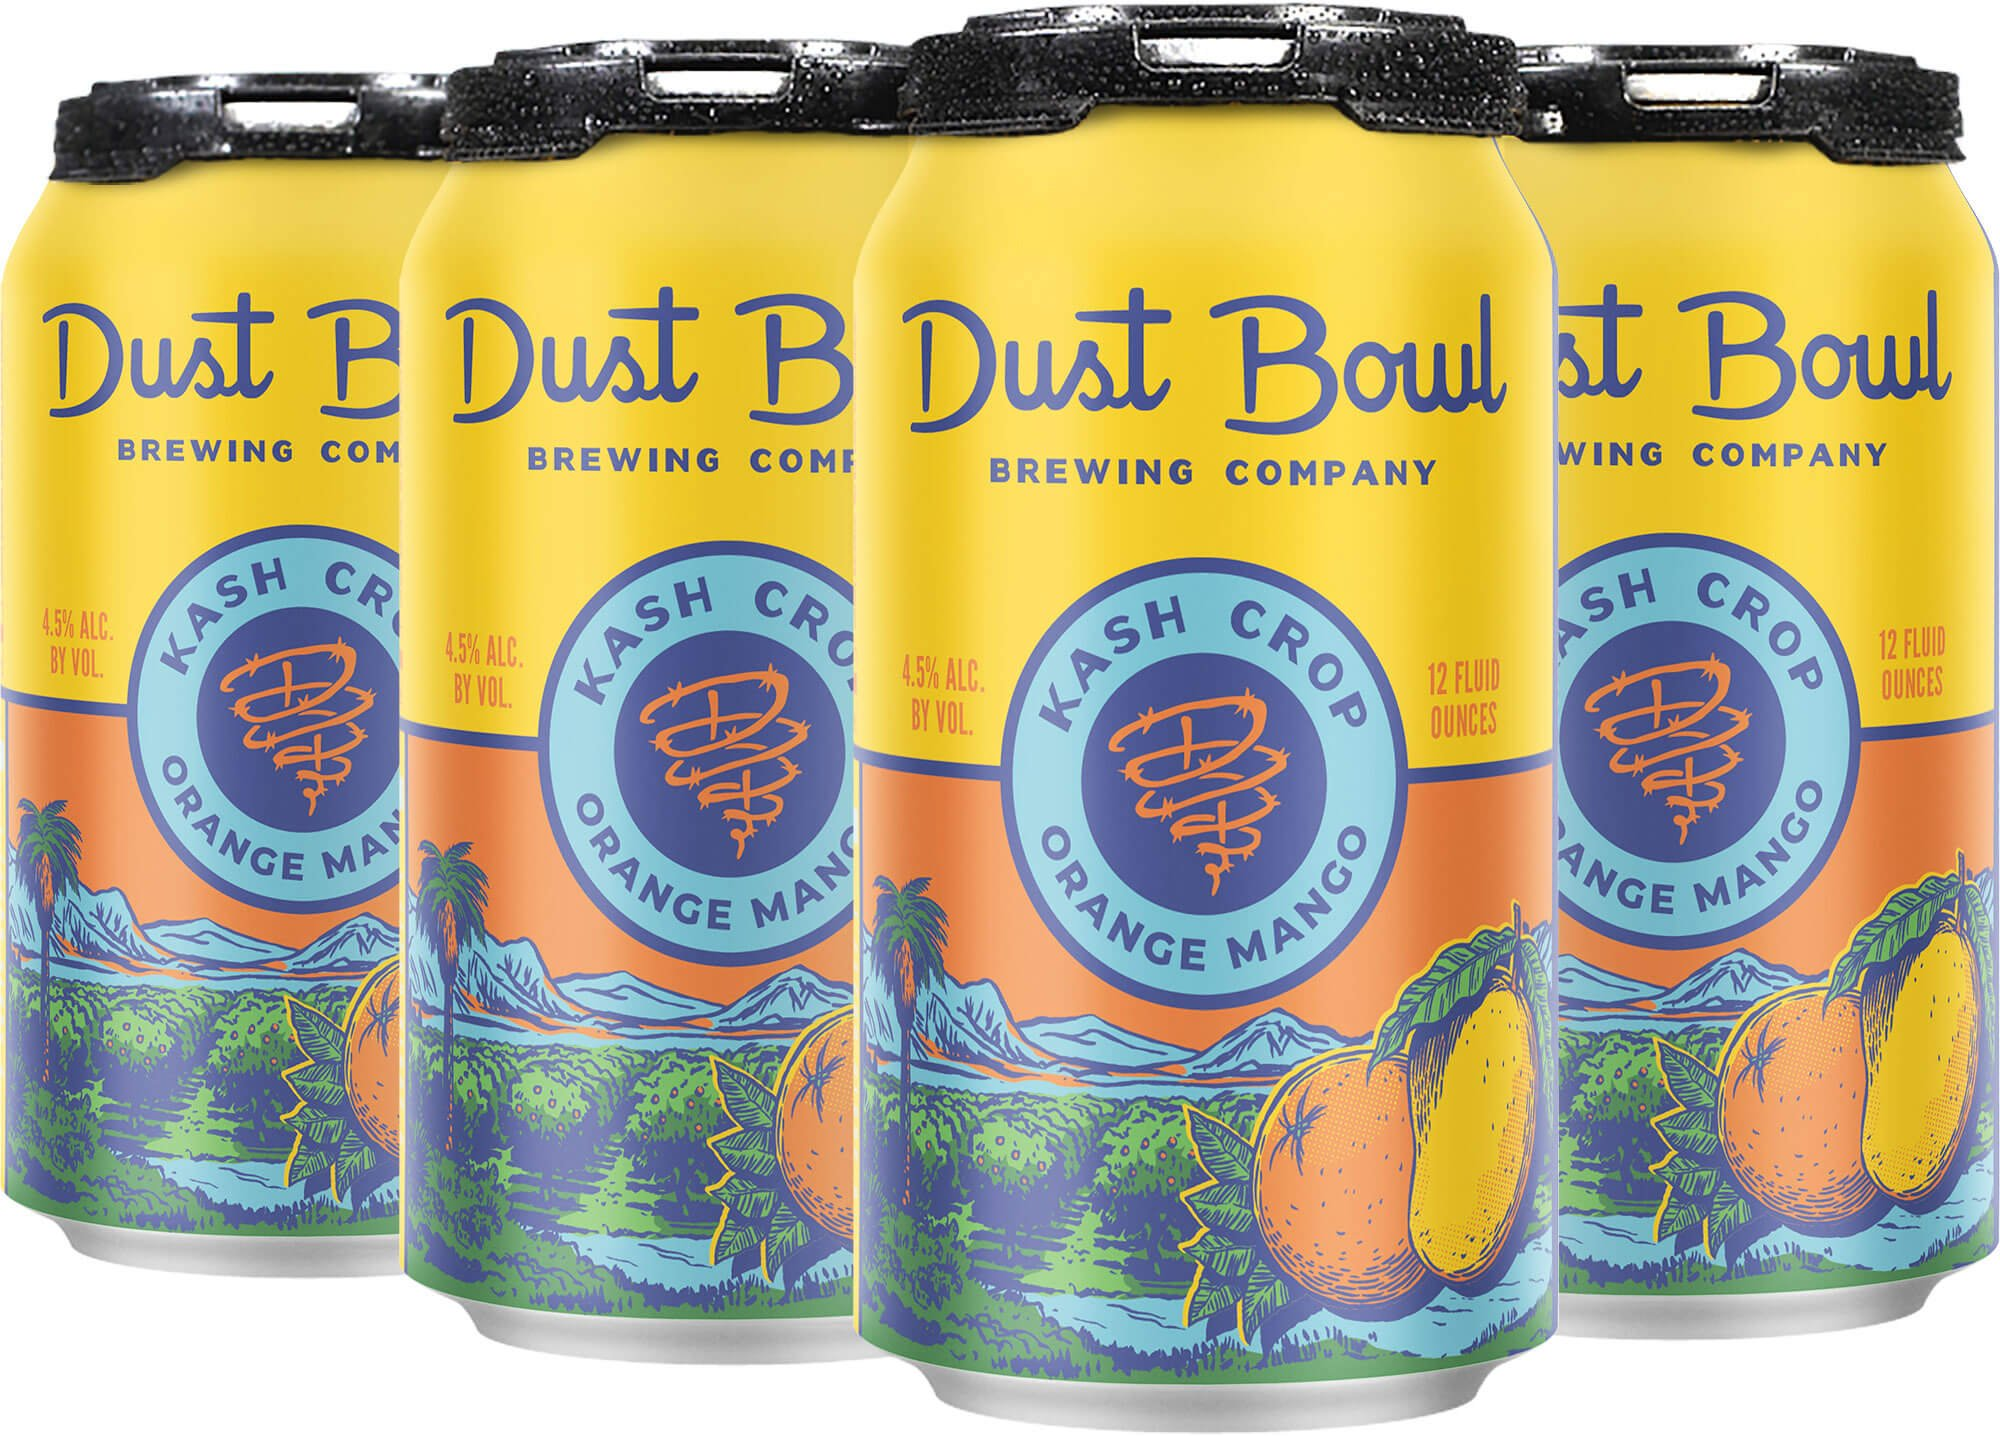 Packaging for six packs of 12 oz. cans of the Kash Crop Orange Mango Ale by Dust Bowl Brewing Co.